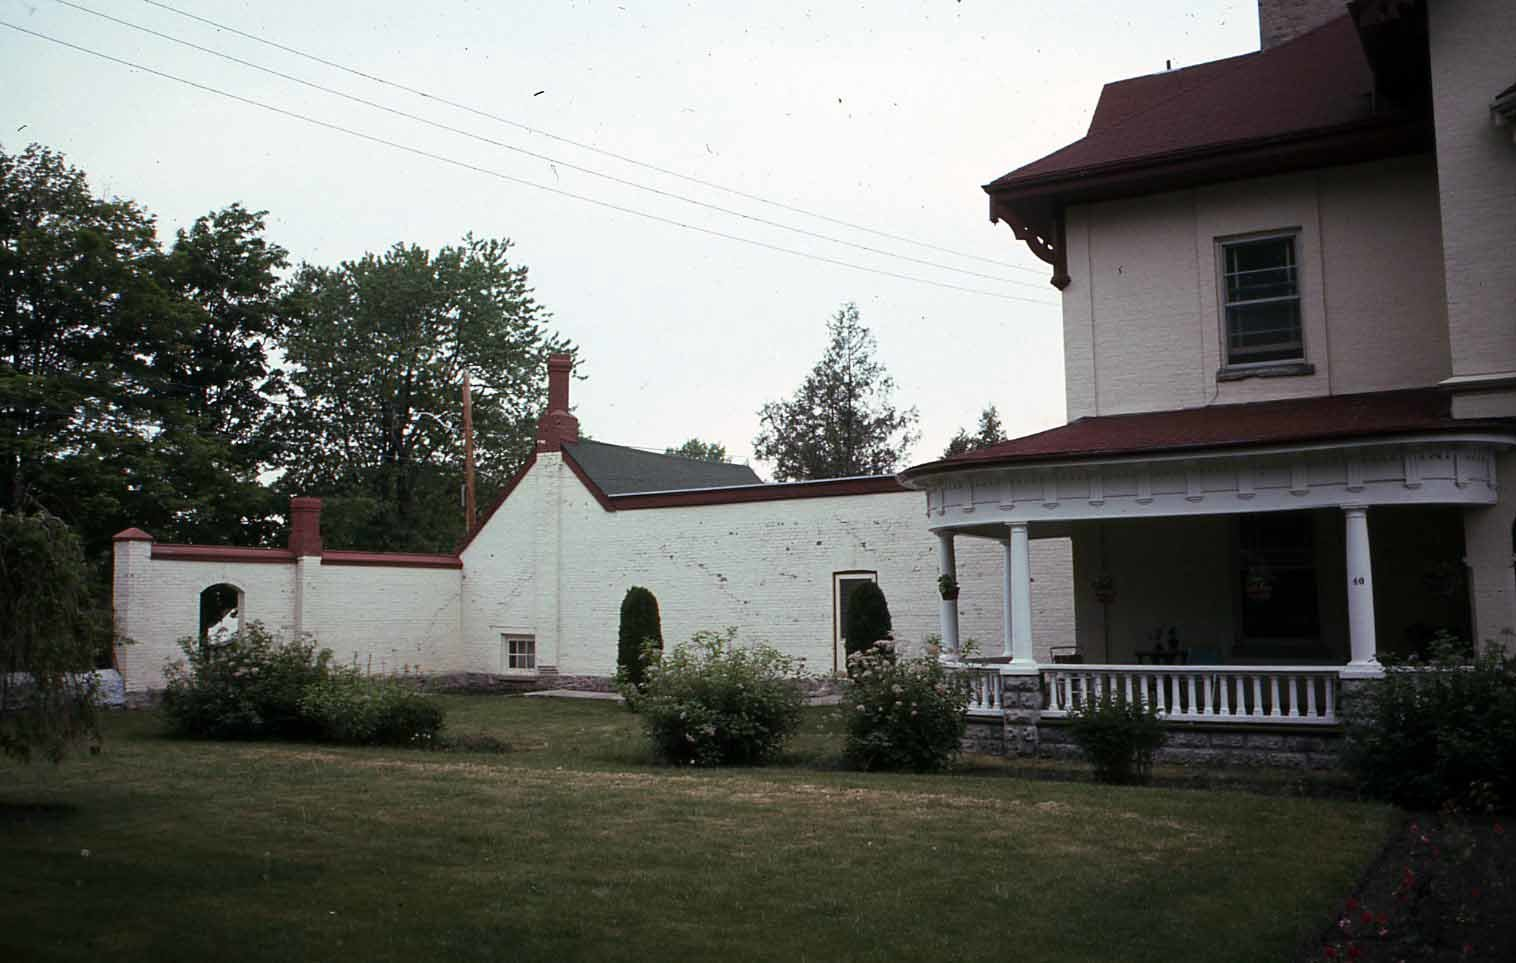 West wing, St. Mary's Church Rectory, Lindsay